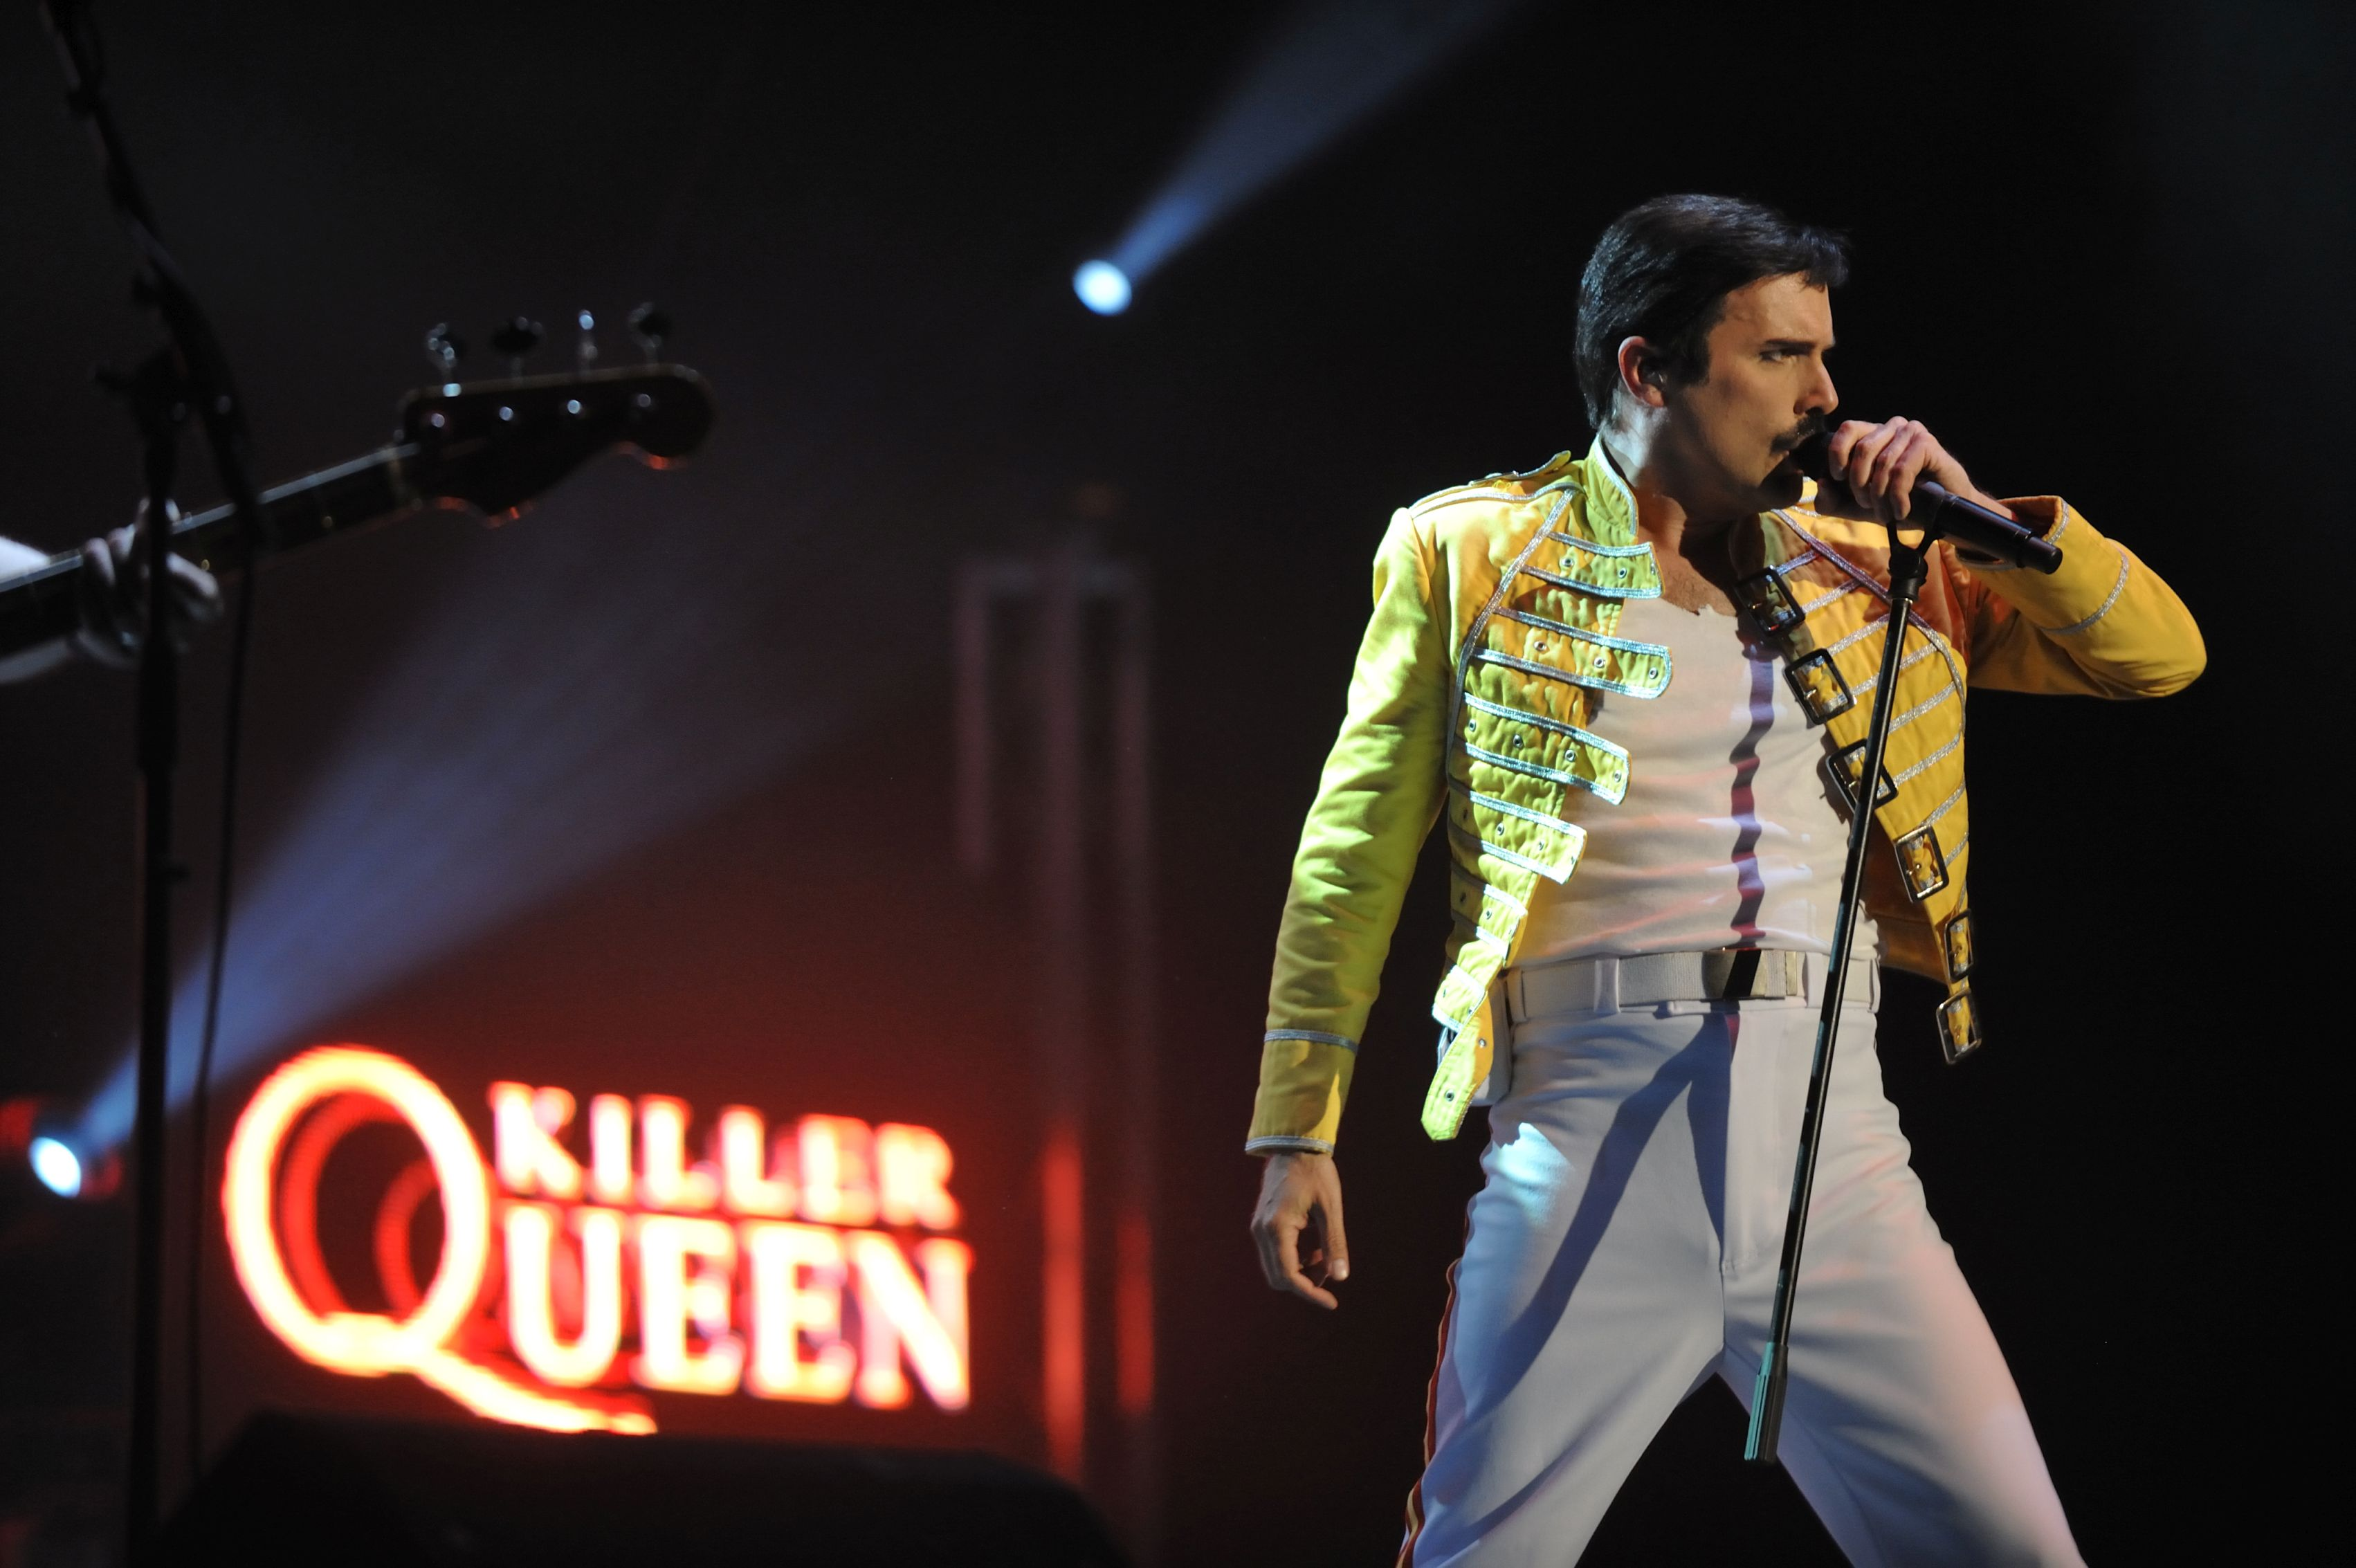 Announced: PREMIER TRIBUTE TO QUEEN ANNOUNCED FOR MOTORPOINT ARENA